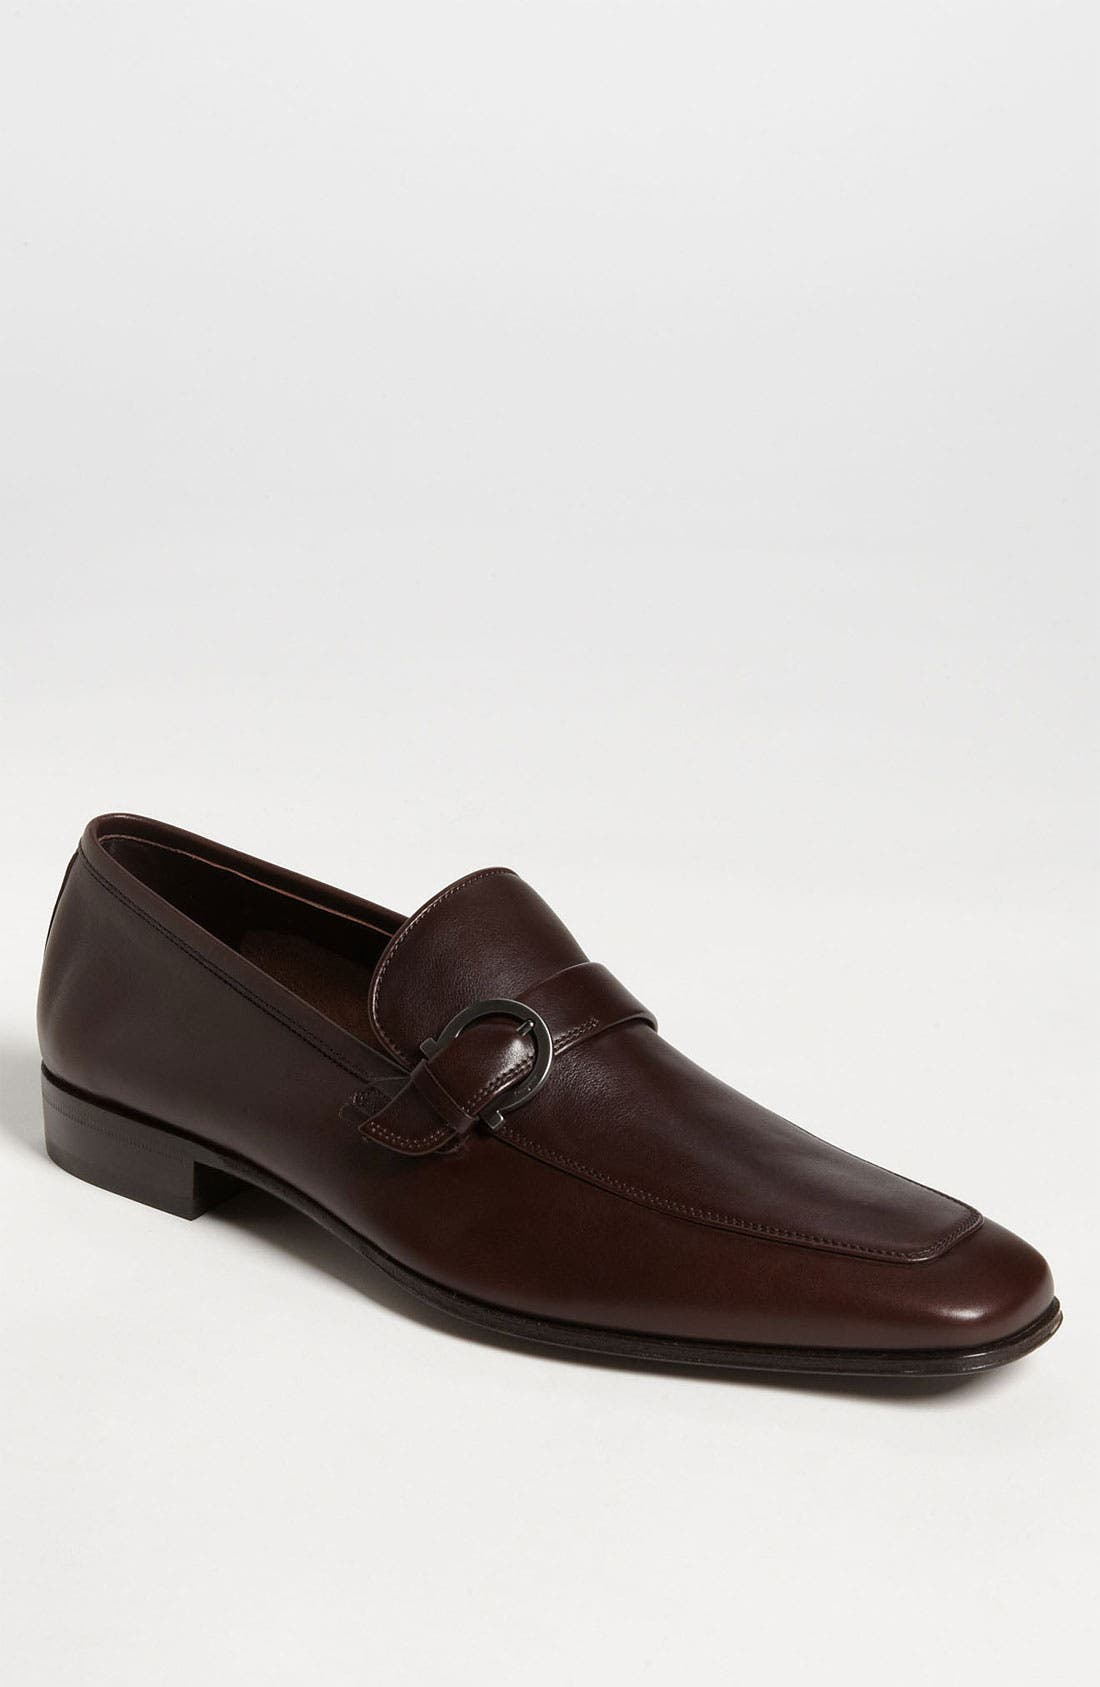 Alternate Image 1 Selected - Salvatore Ferragamo 'Ticino' Loafer